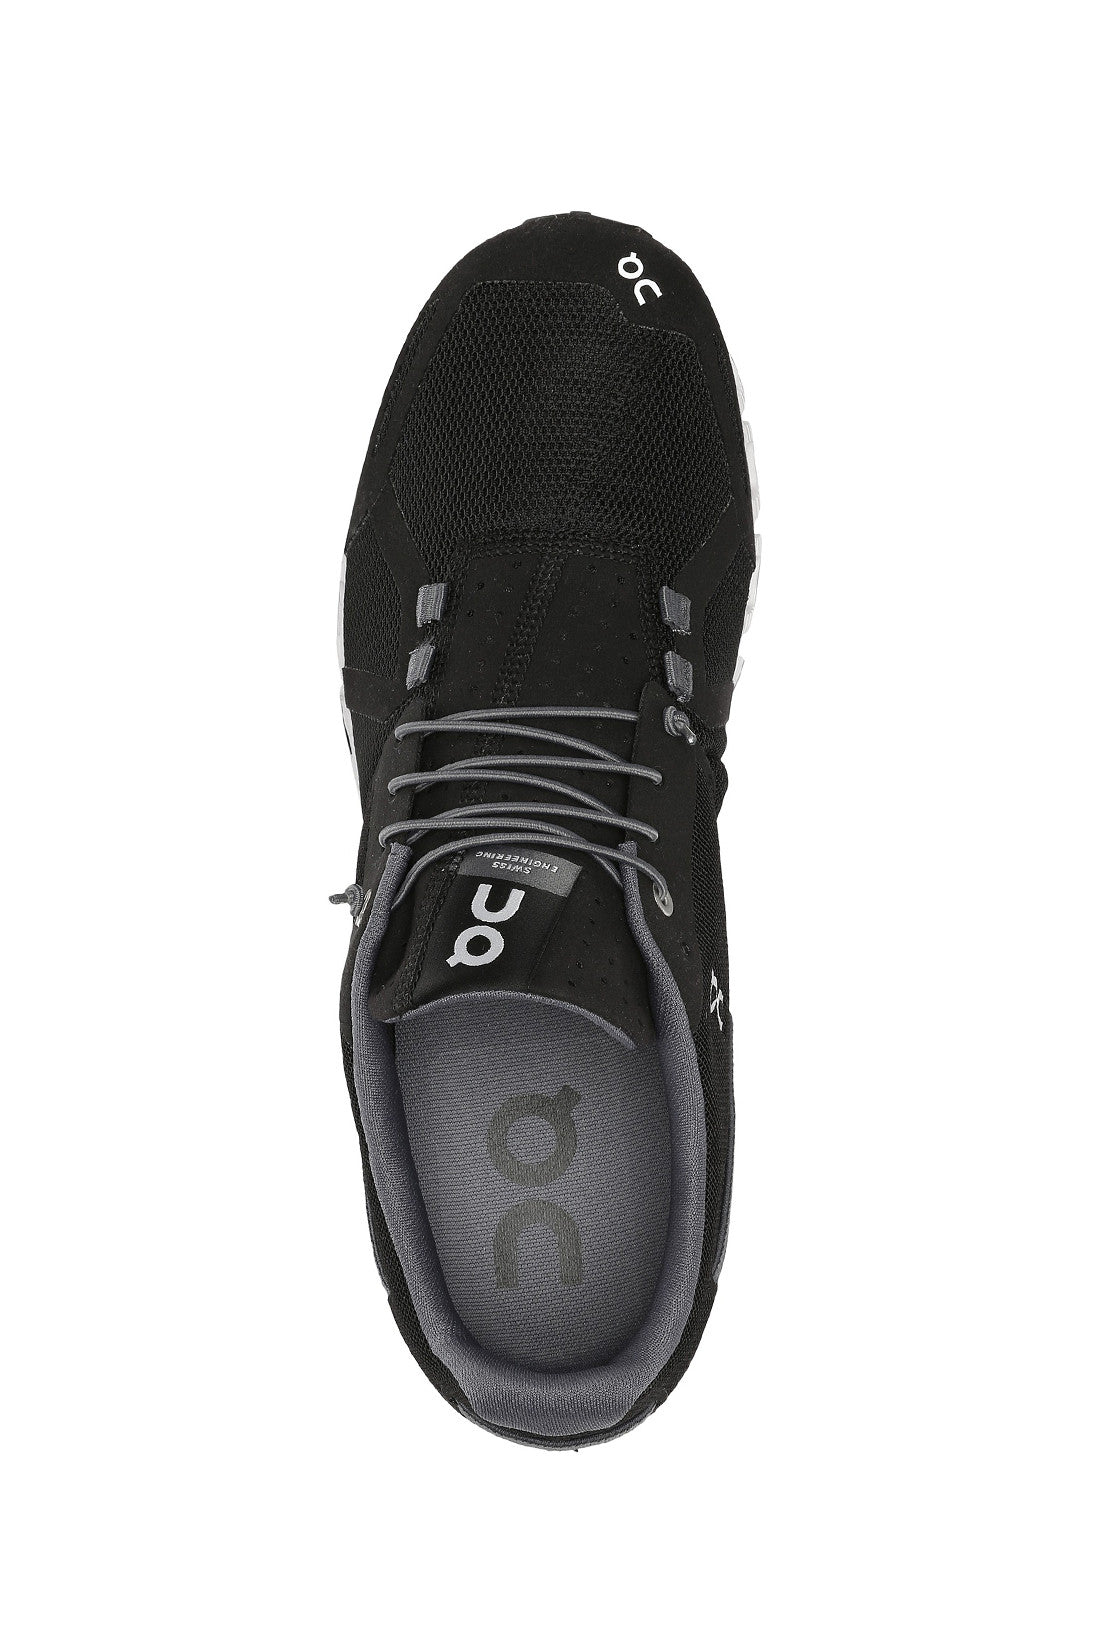 626d542a6441 Performance Running Shoes